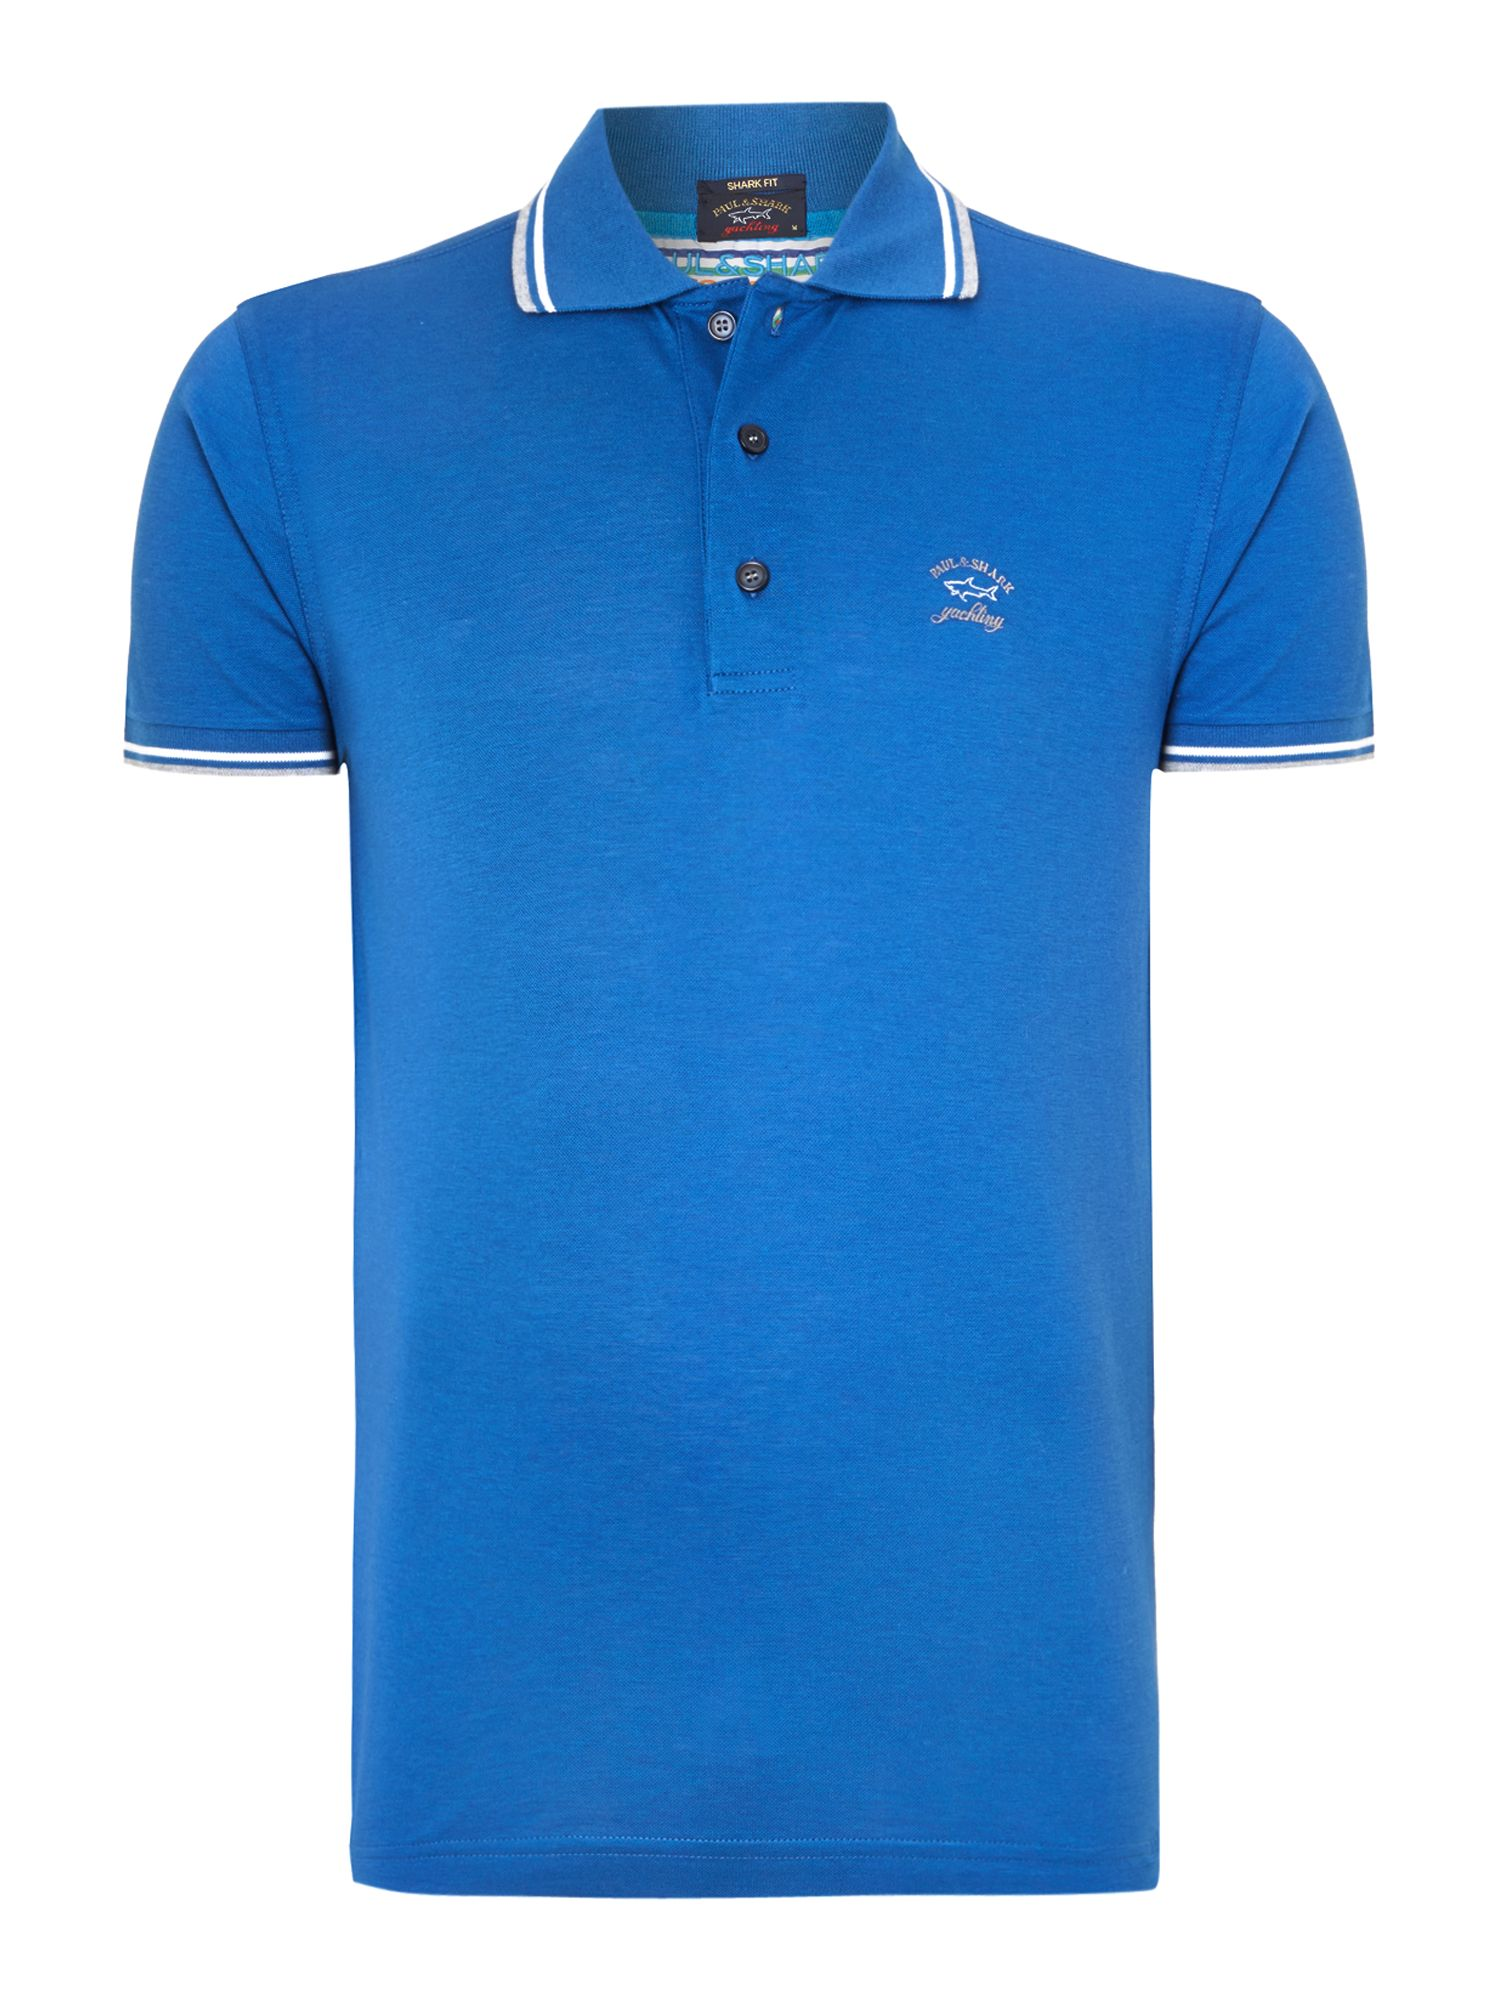 Twin tipped pique polo